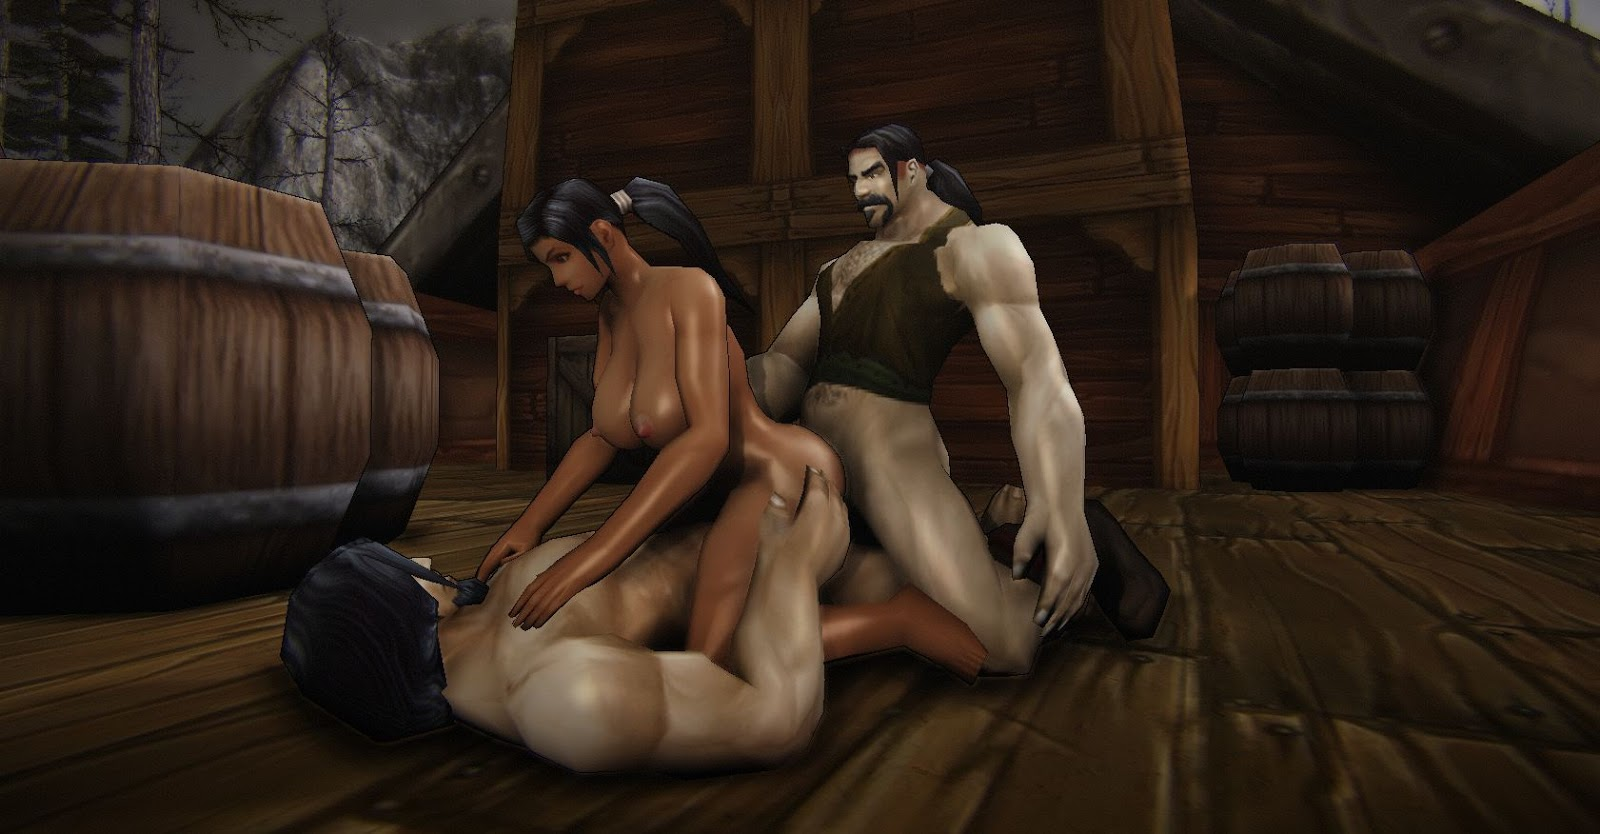 Warcraft fuk sex porn photo